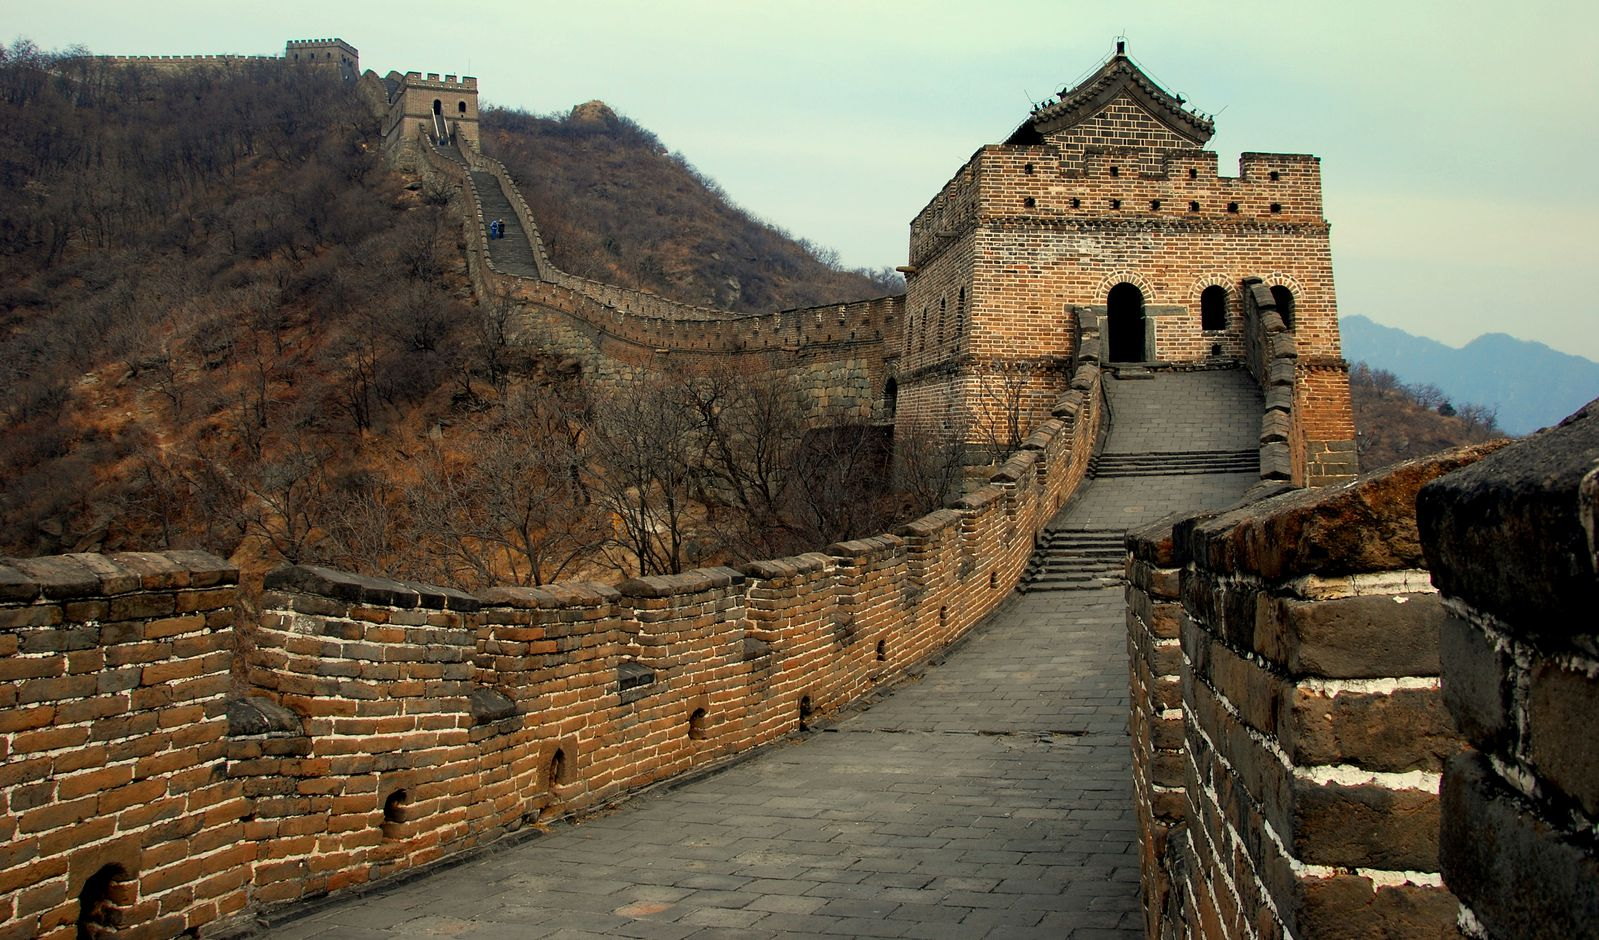 Greate wall of China